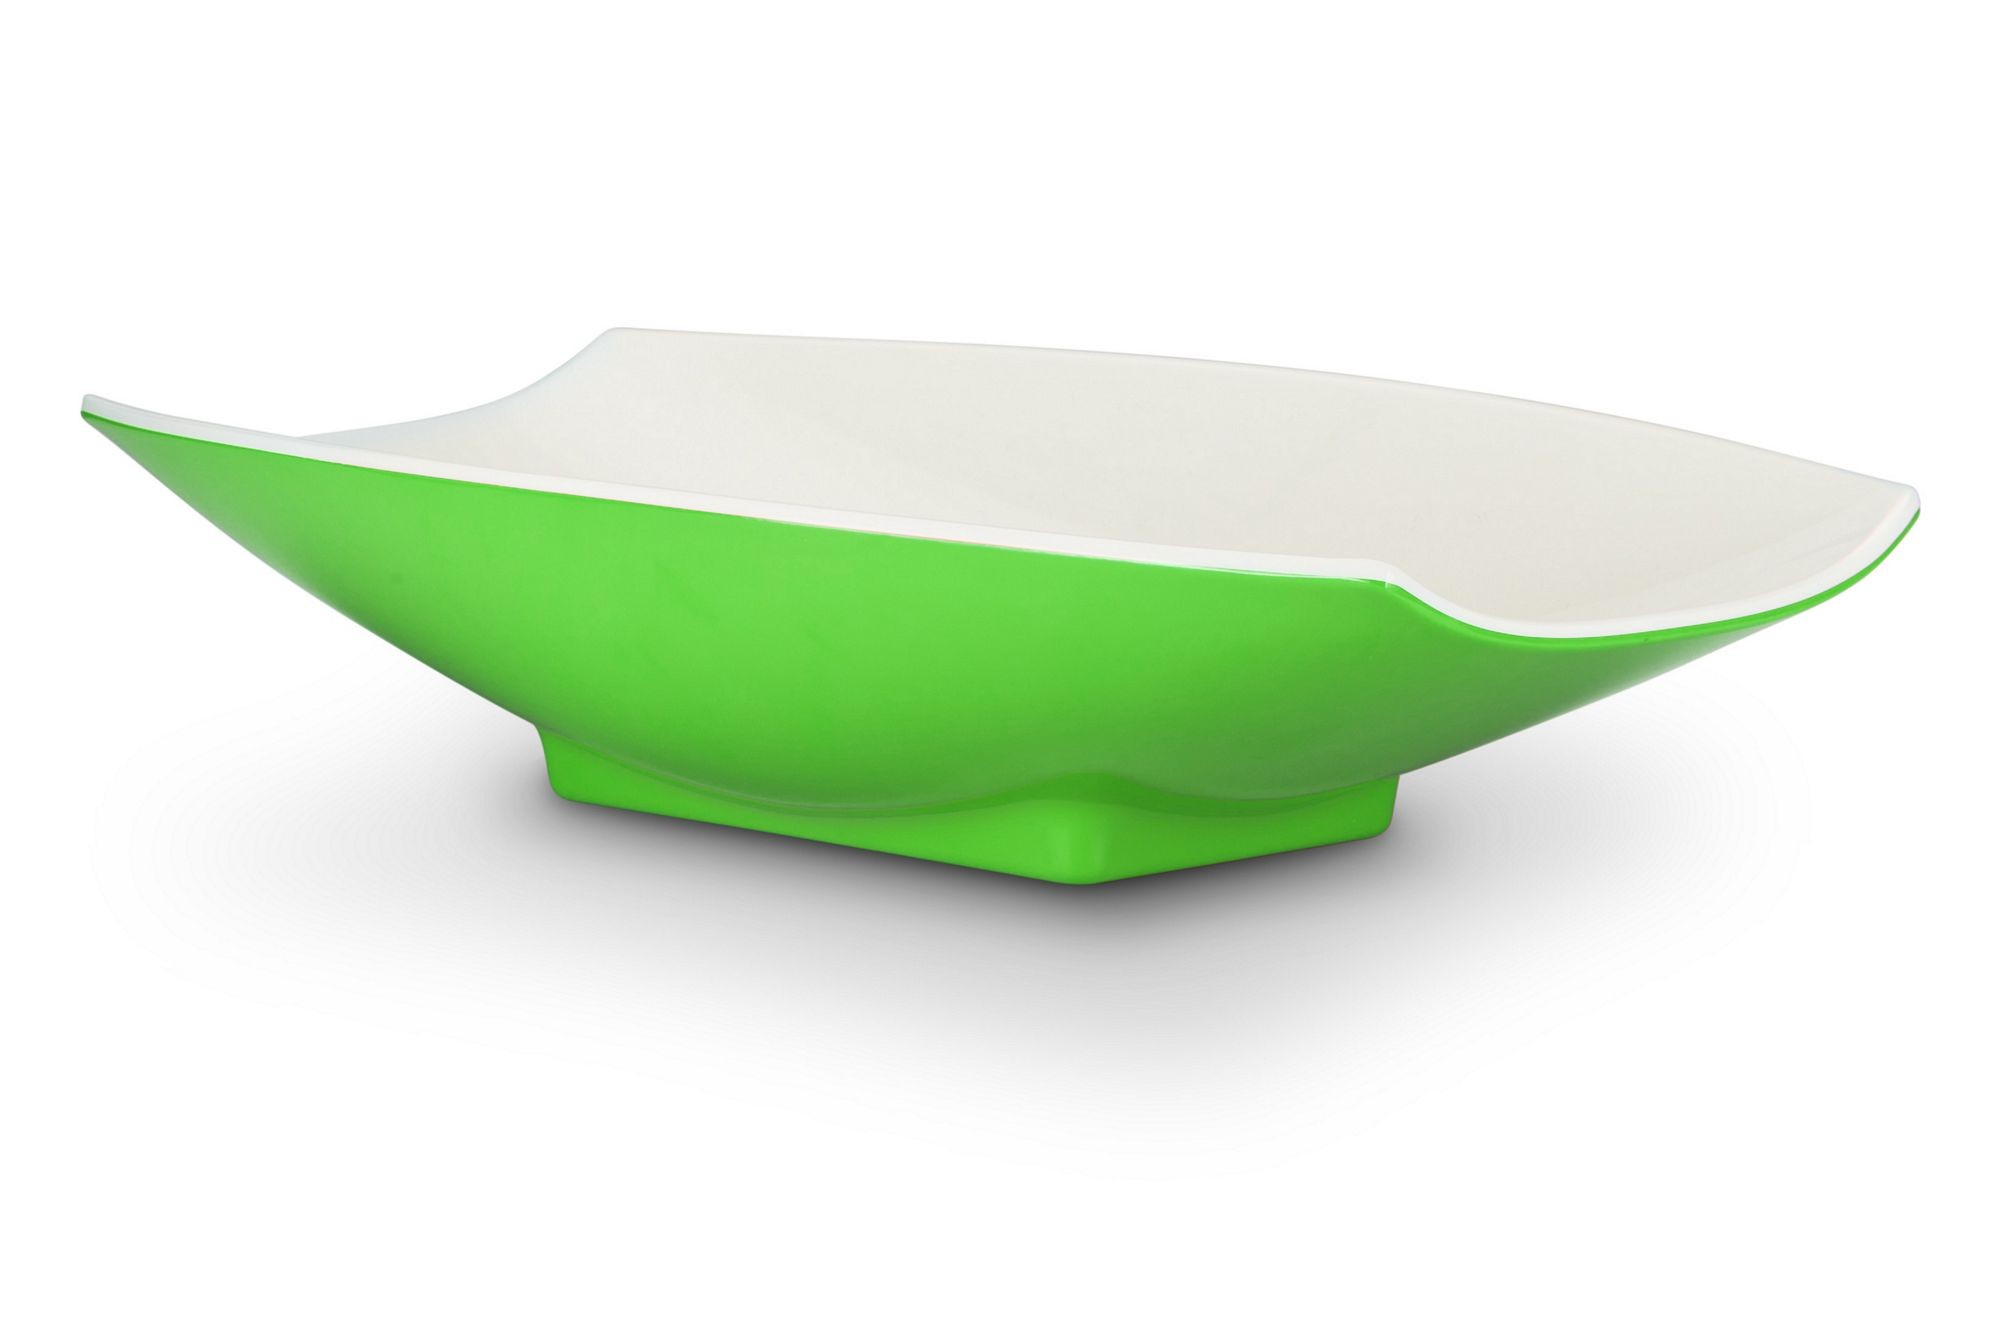 Bon Chef 53705-2ToneLime Melamine Curves Bowl, Lime Outside/White Inside 5 Qt.